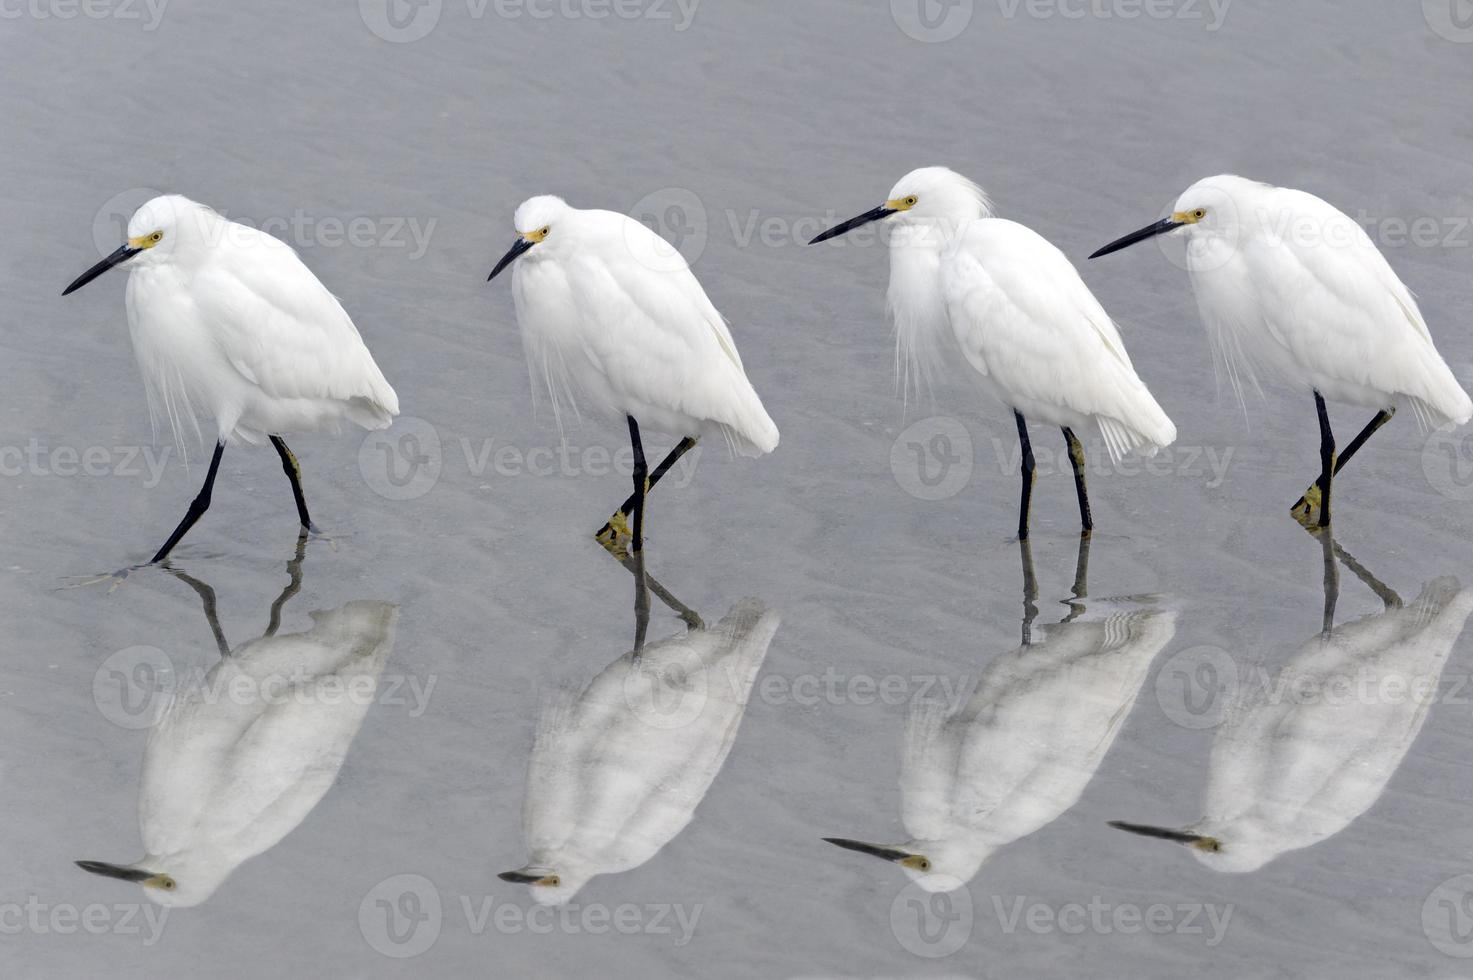 Snowy Egrets Walking on Beach (Re-submission of 22479563) photo